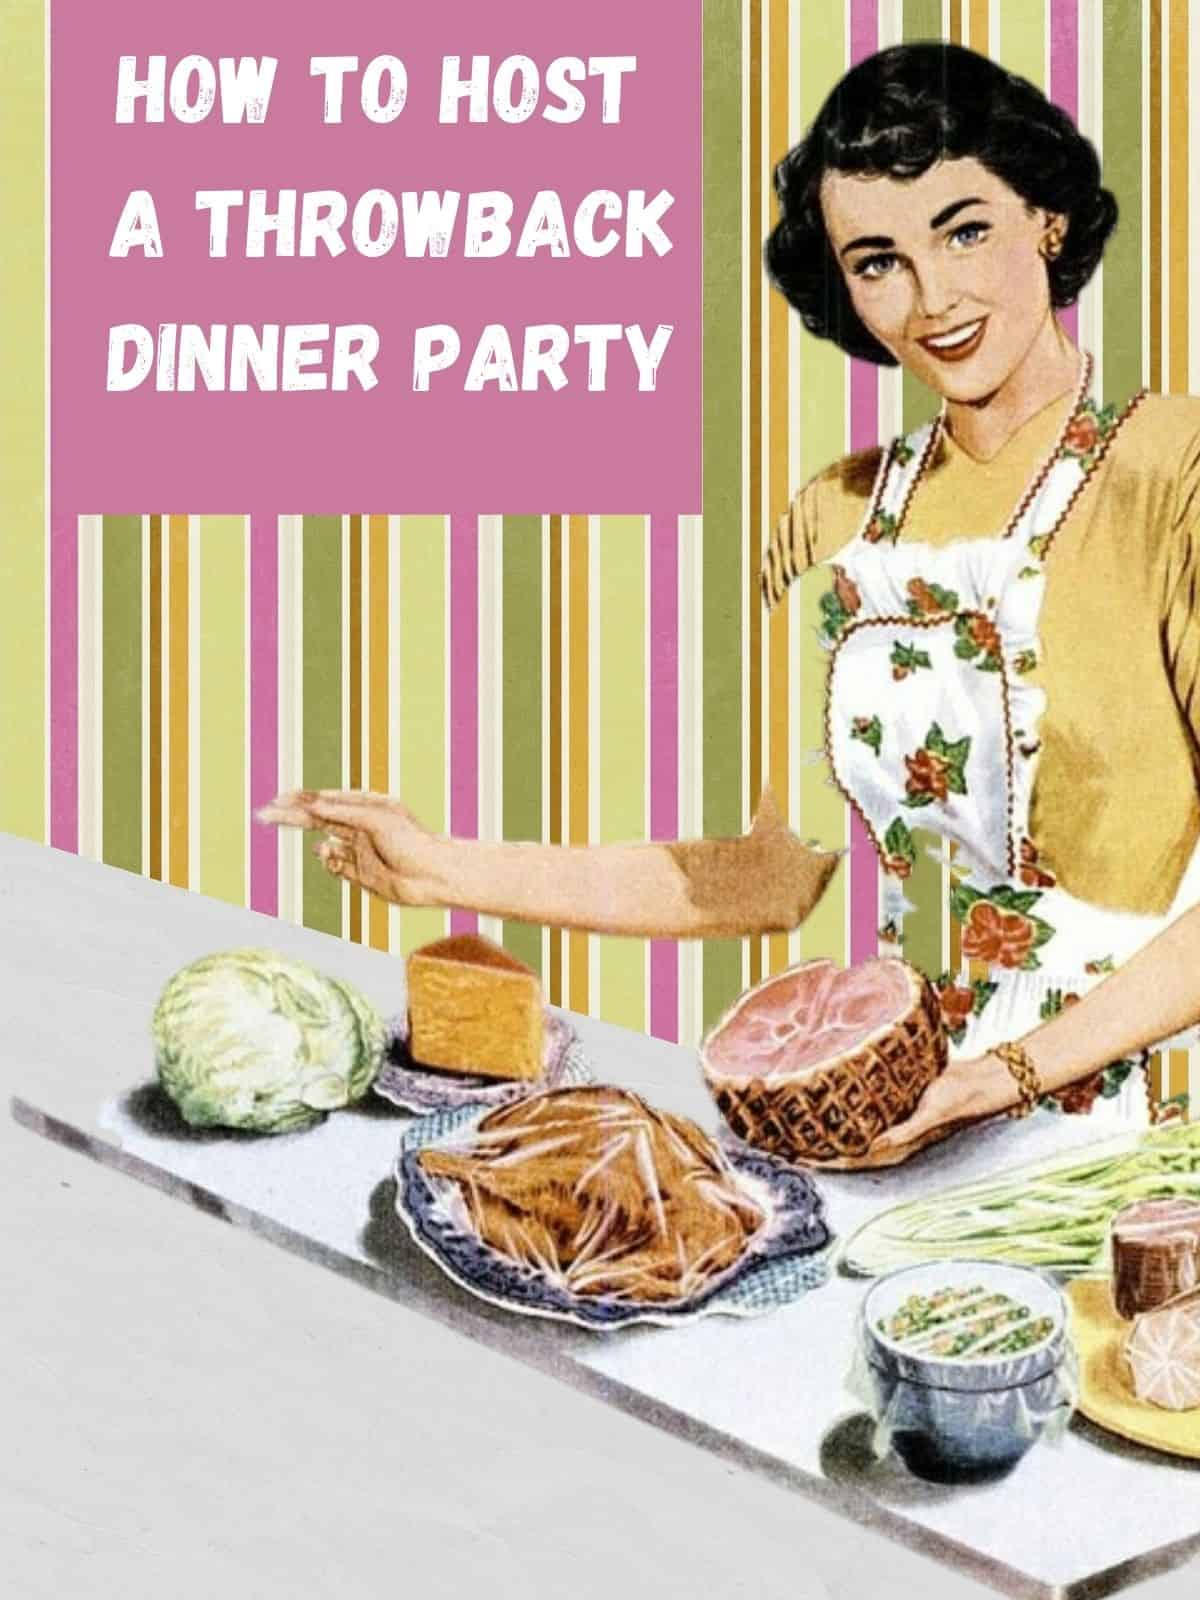 throwback dinner party with retro picture of women with food